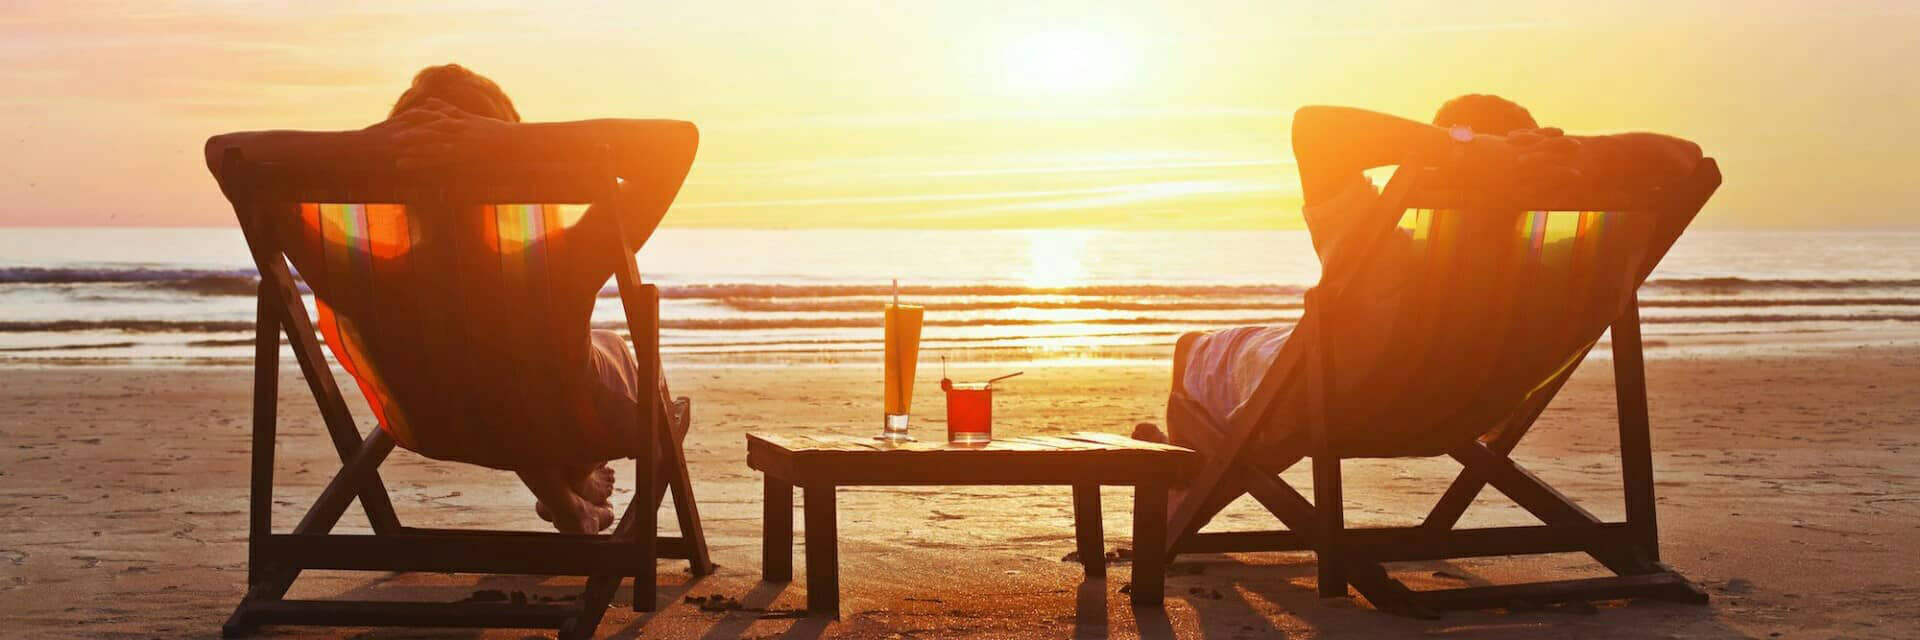 Are Unlimited Vacations Actually Unlimited? | Tapwage Job Search